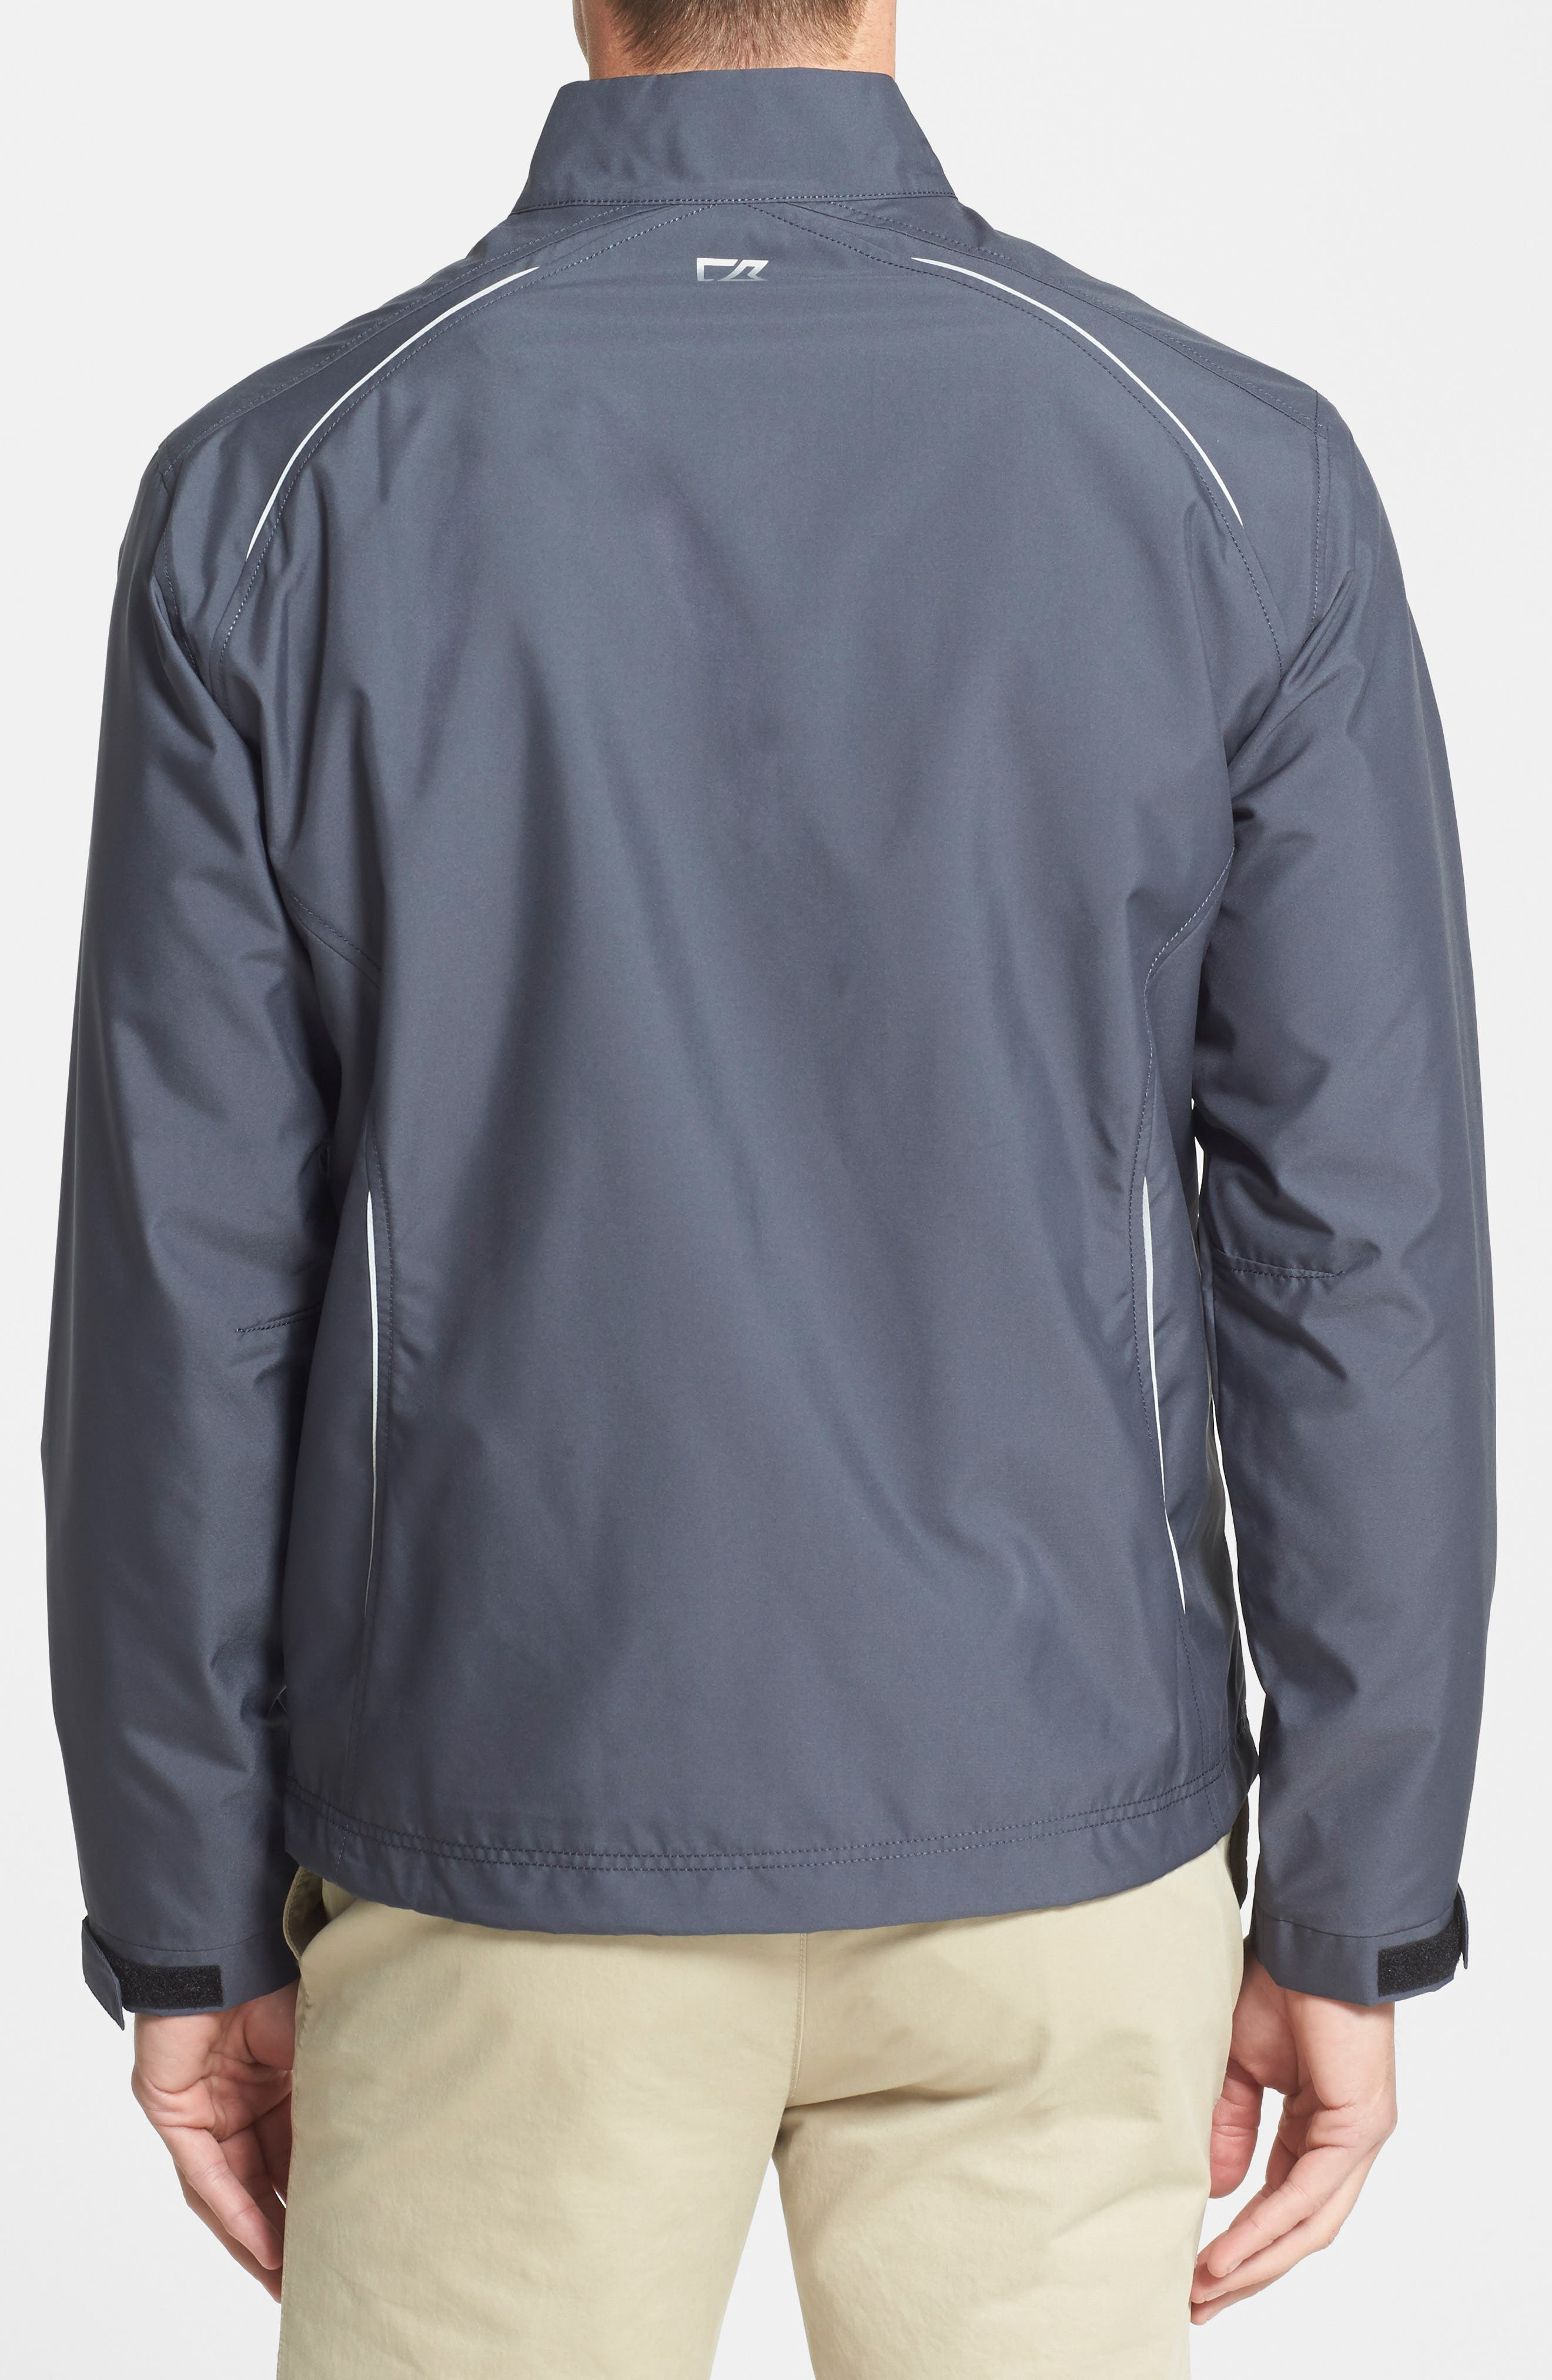 Beacon WeatherTec Wind & Water Resistant Jacket,                             Alternate thumbnail 4, color,                             ONYX GREY